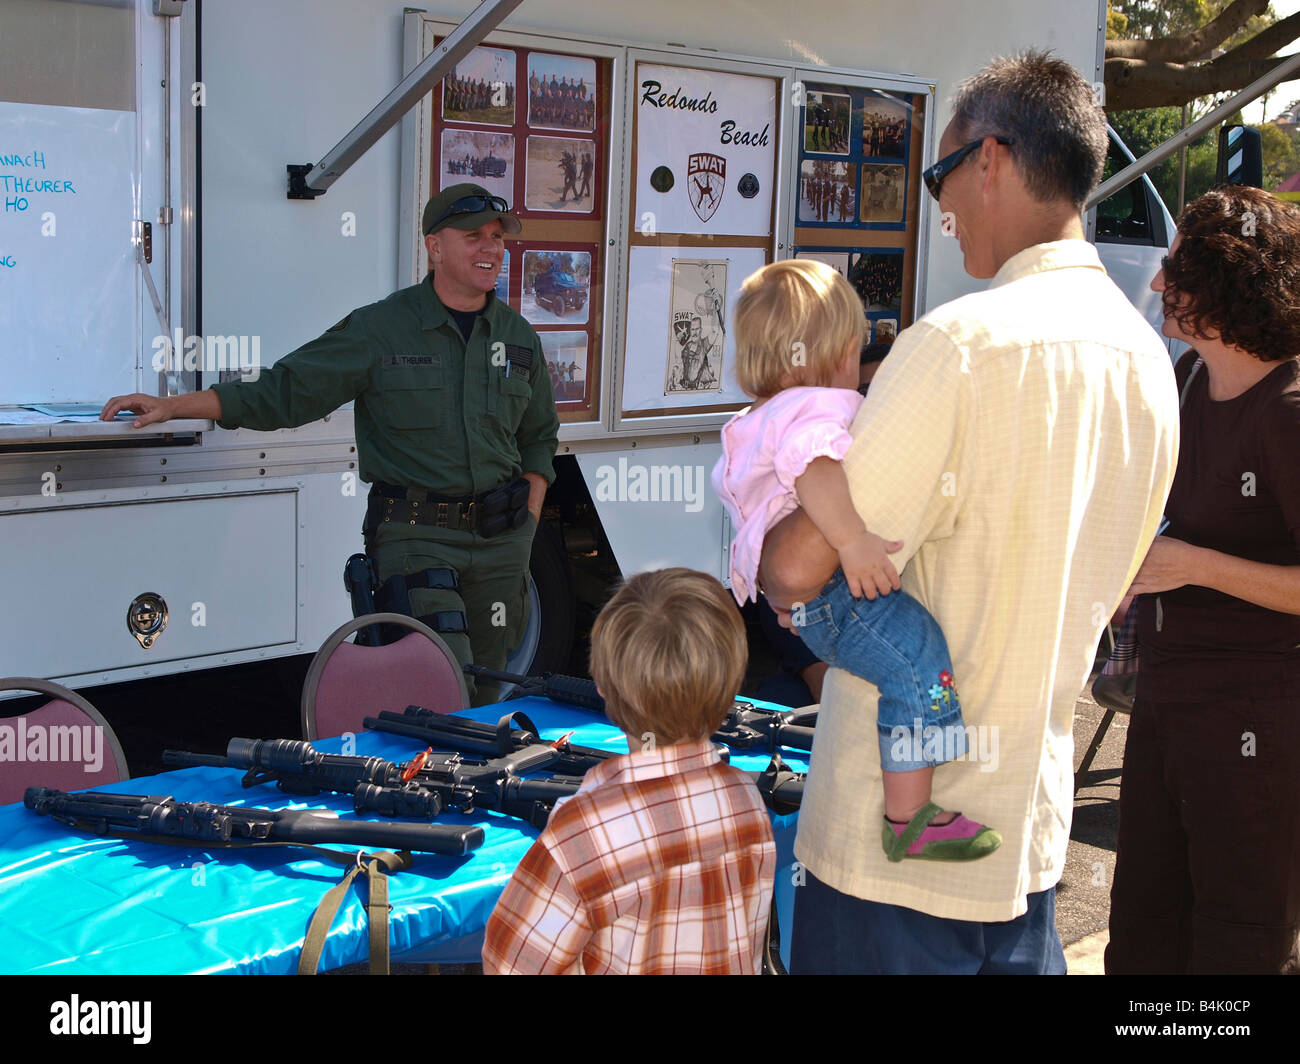 Redondo Beach swat team officer chats with fair attendees viewing some of the teams weaponry - Stock Image